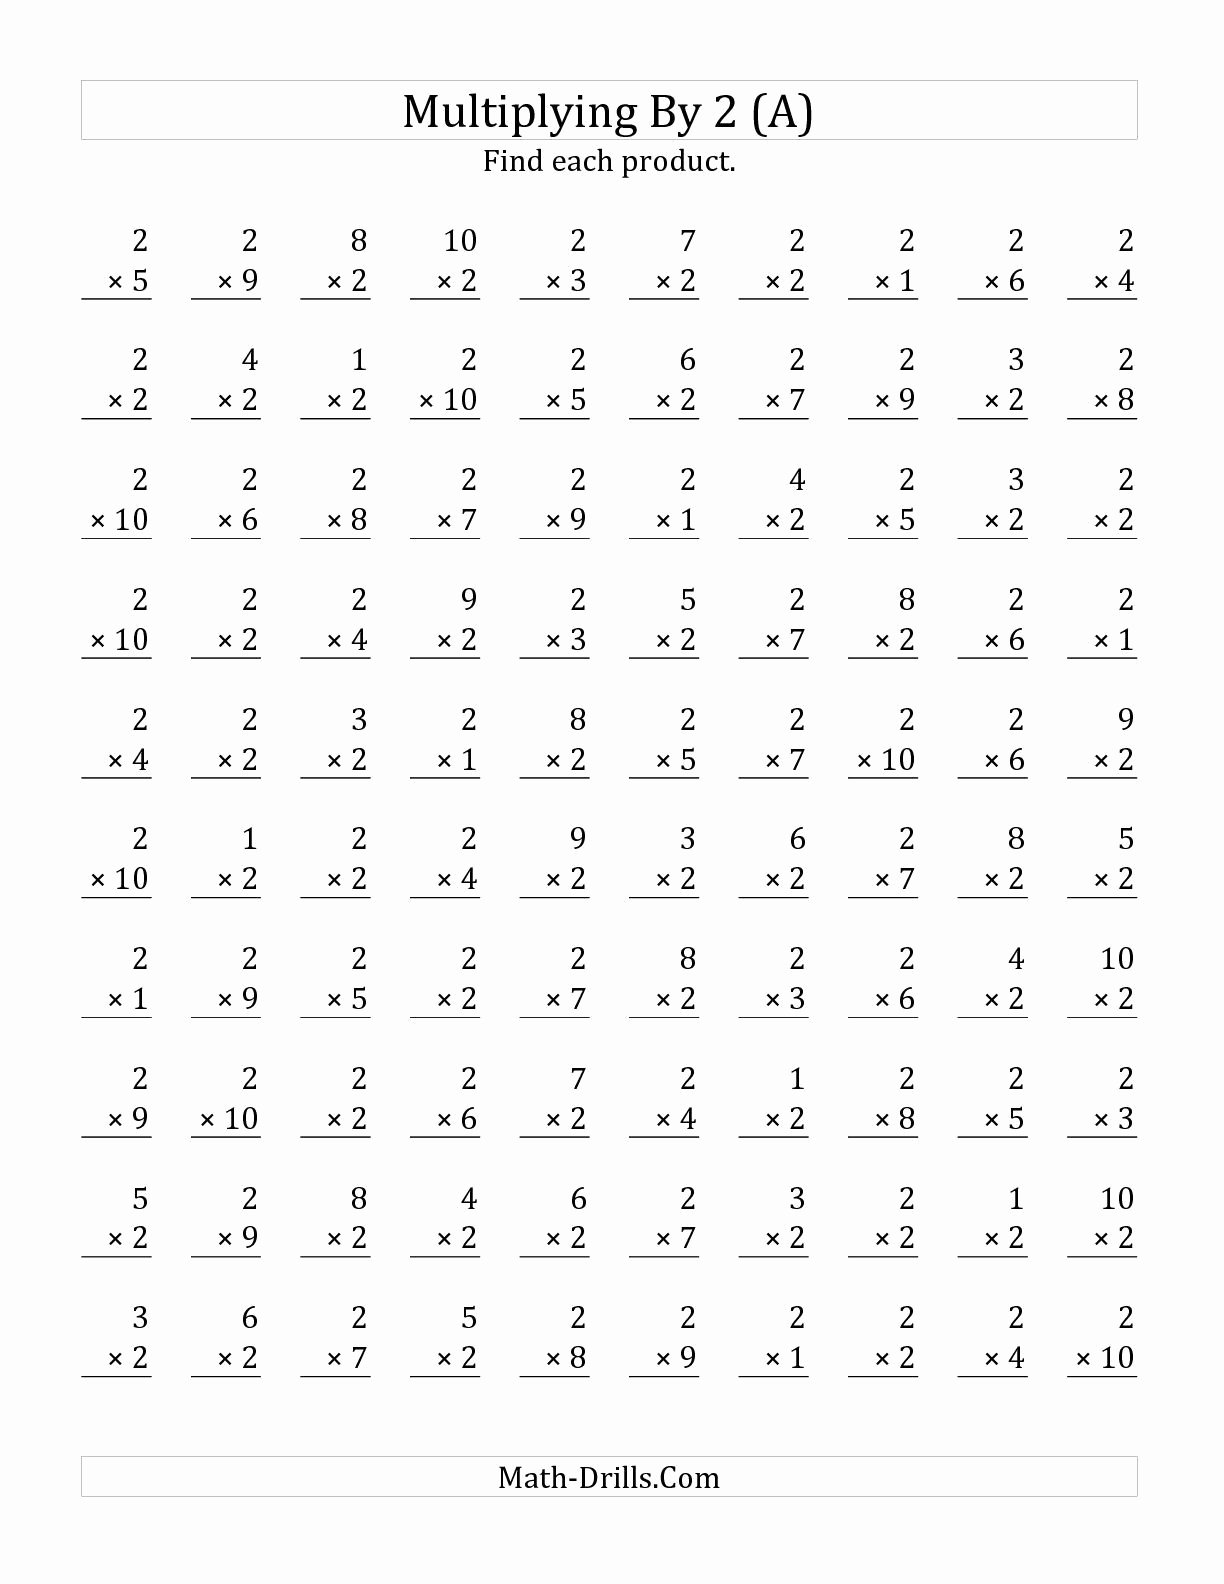 Free Math Multiplication Worksheets top the Multiplying 1 to 10 by 2 A Math Worksheet From the